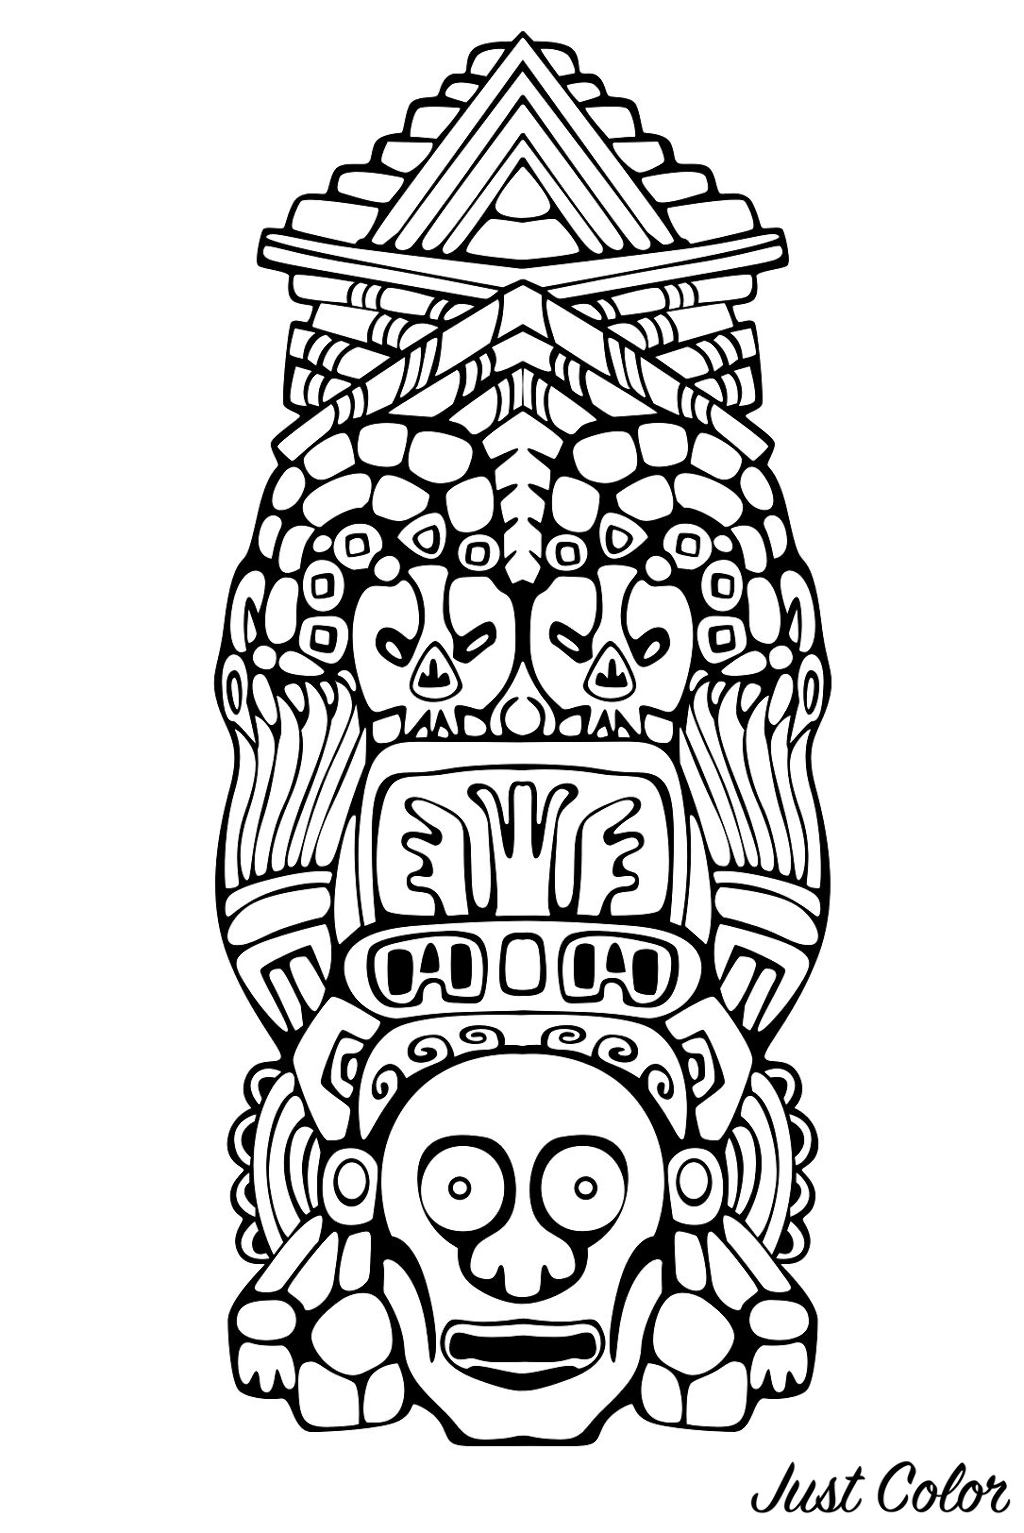 Totem inspired by Aztecs, Mayans and Incas - 3